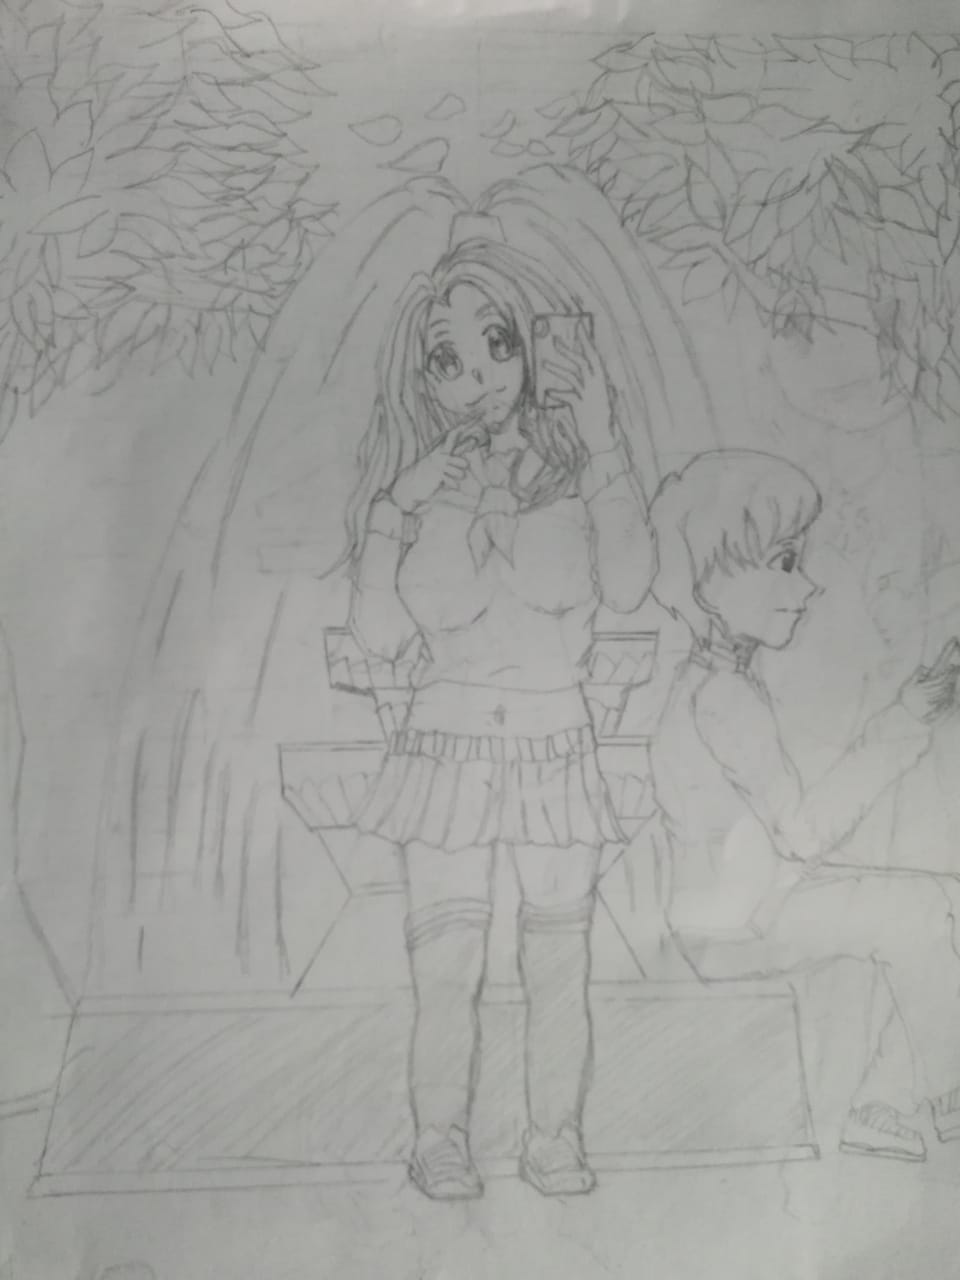 The fountain in the high school Illust of Jal YandereSimulatorFanArtContest AnalogDrawing